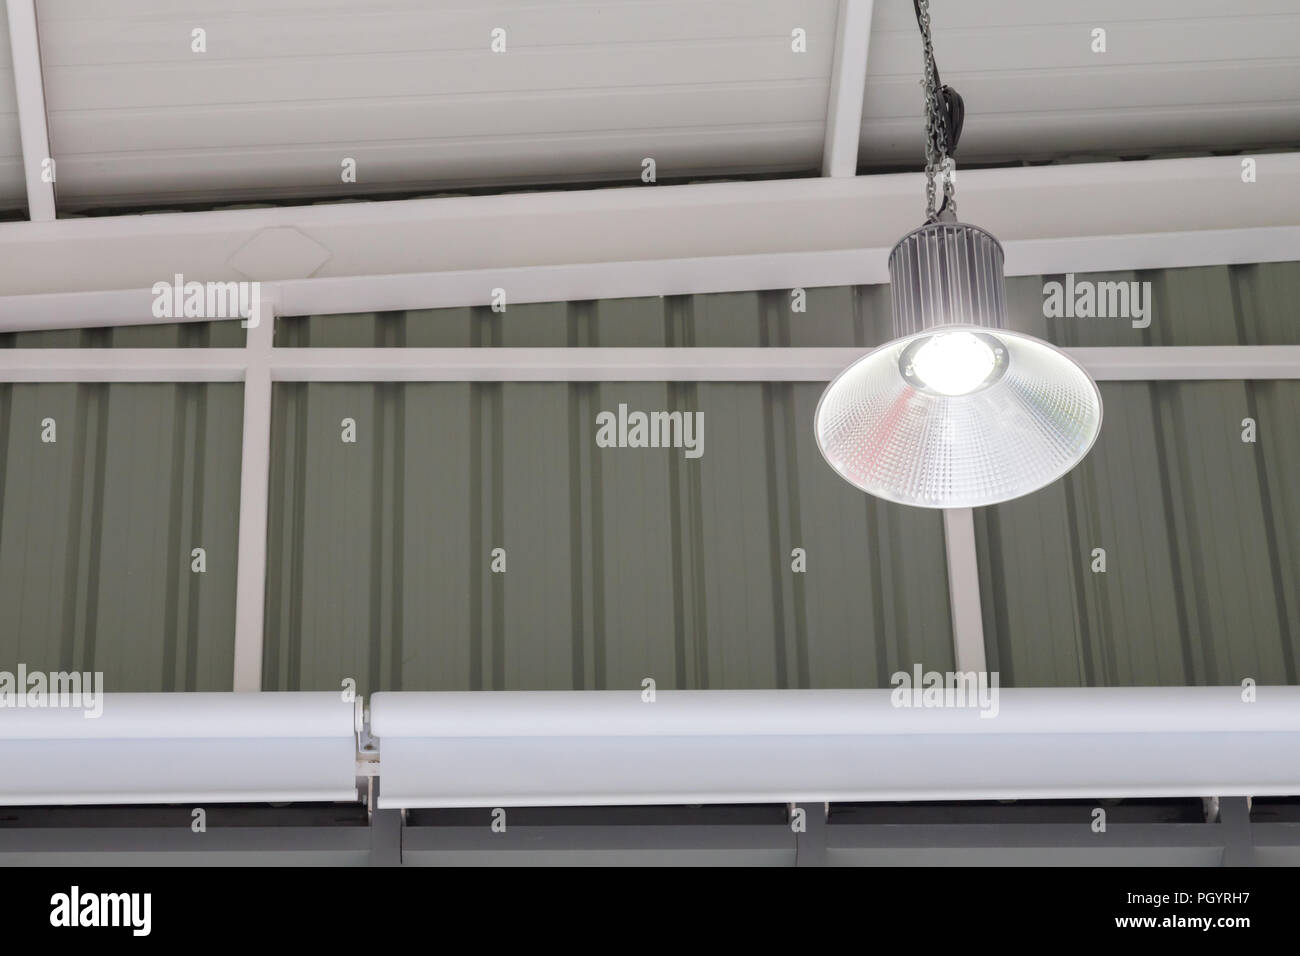 Led Light Bulb In The Industrial Lamp Is Bright On The Ceiling Of The New Warehouse With Copy Space High Bay Lighting Stock Photo Alamy